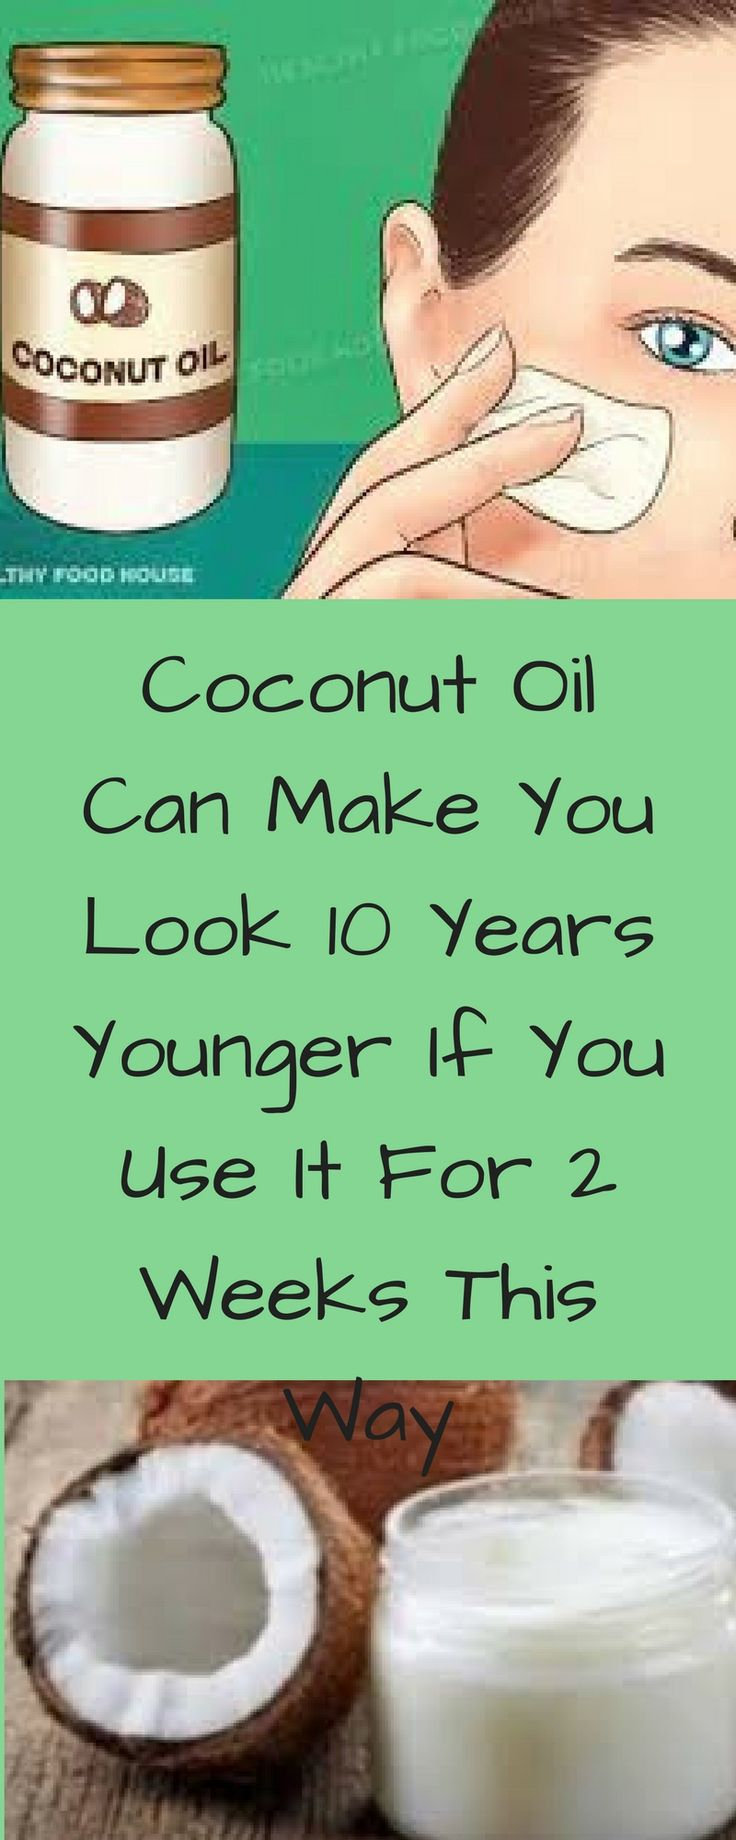 #coconut oil #younger